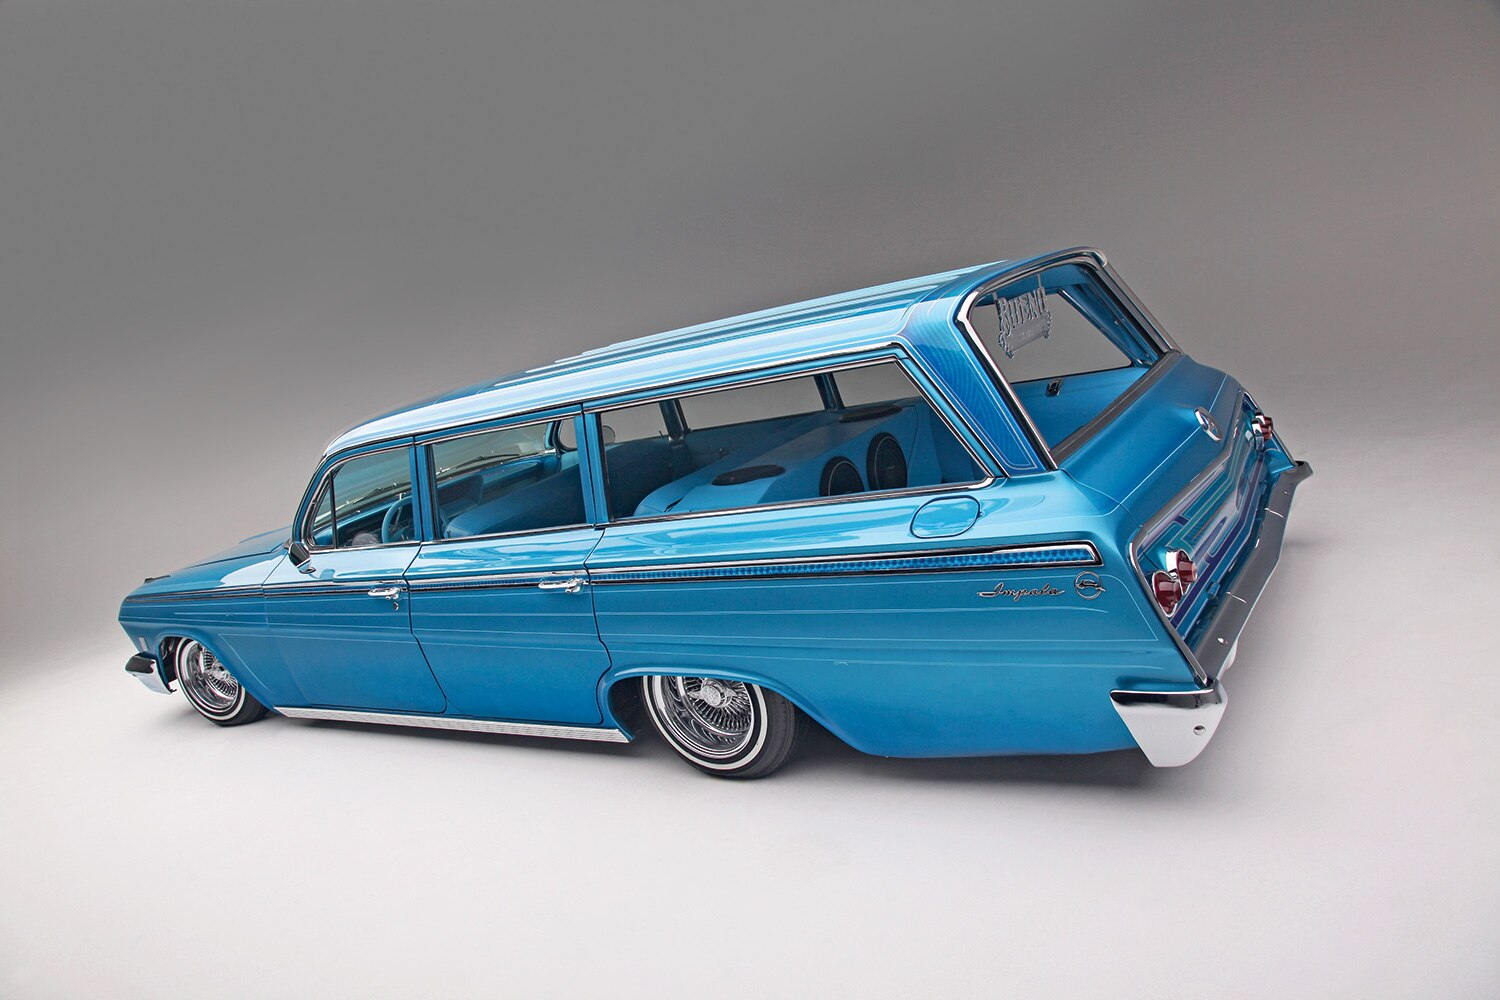 january-2014-editors-letter-1962-chevrolet-impala-station-wagon-promo